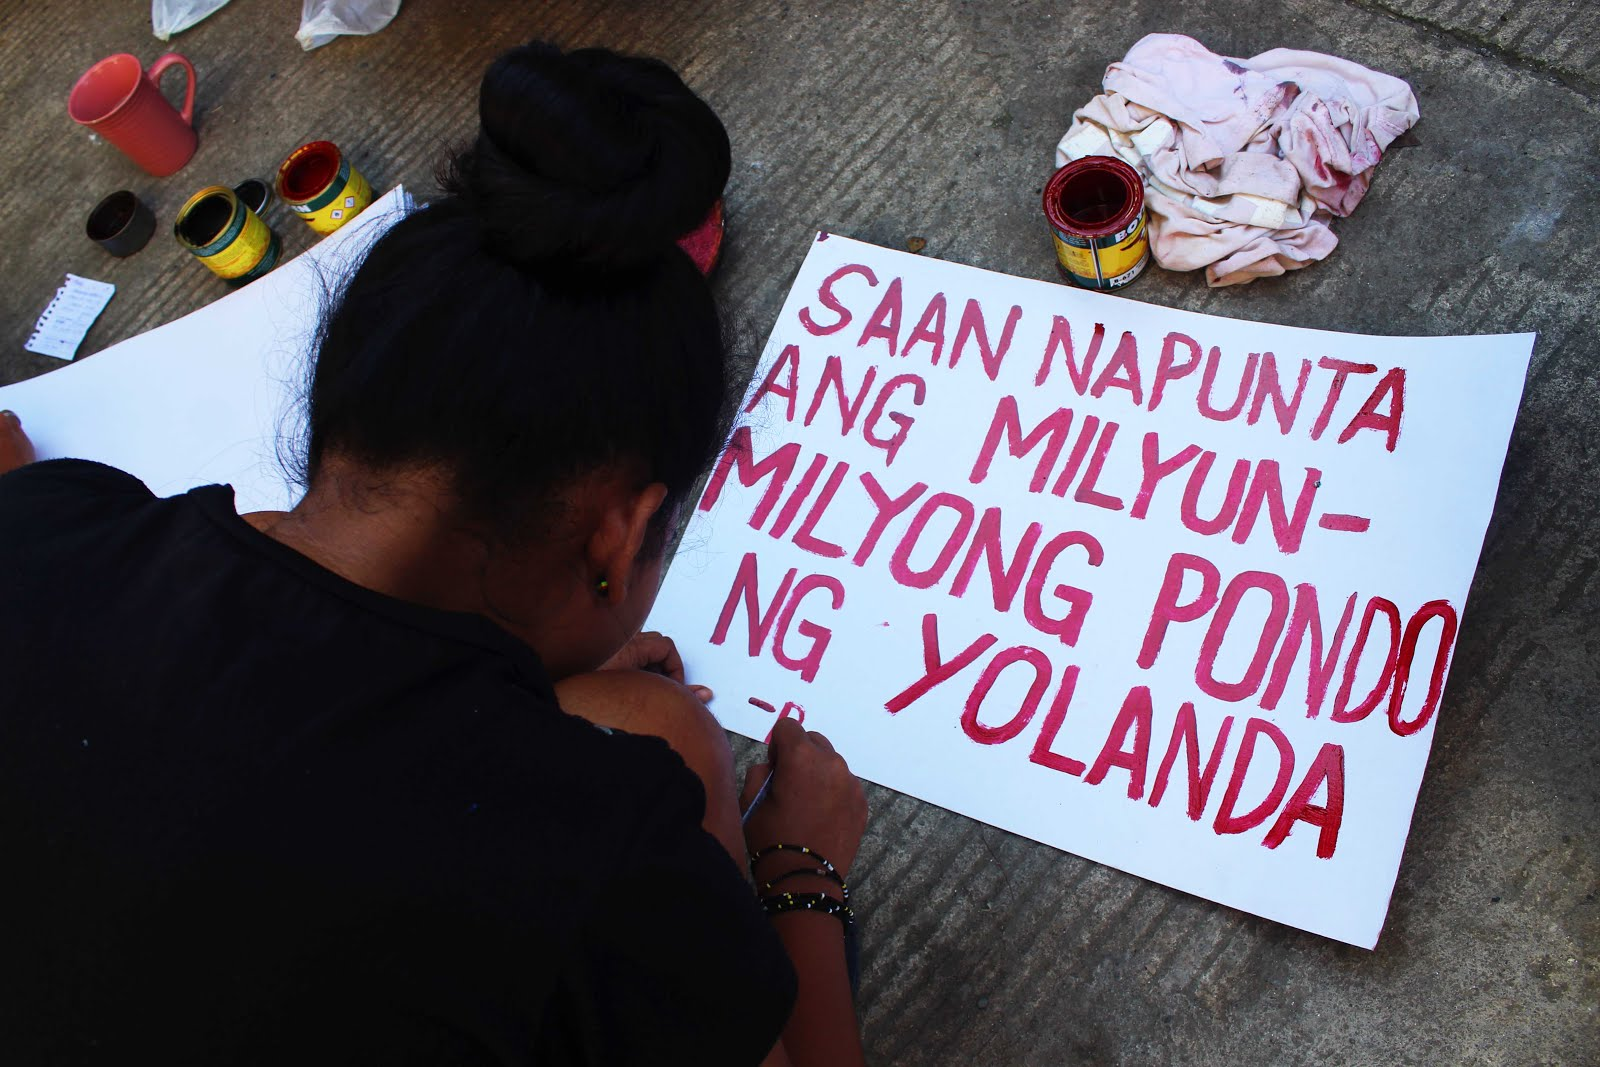 Growing up after Yolanda. Youth from a underprivileged community in Aklan recount their harrowing experiences surviving super typhoon Yolanda.  Community, Yolanda, Activism, Aklan, Youth, Awareness, Society, Advocacy, Basic Mases Integration, Empowerment